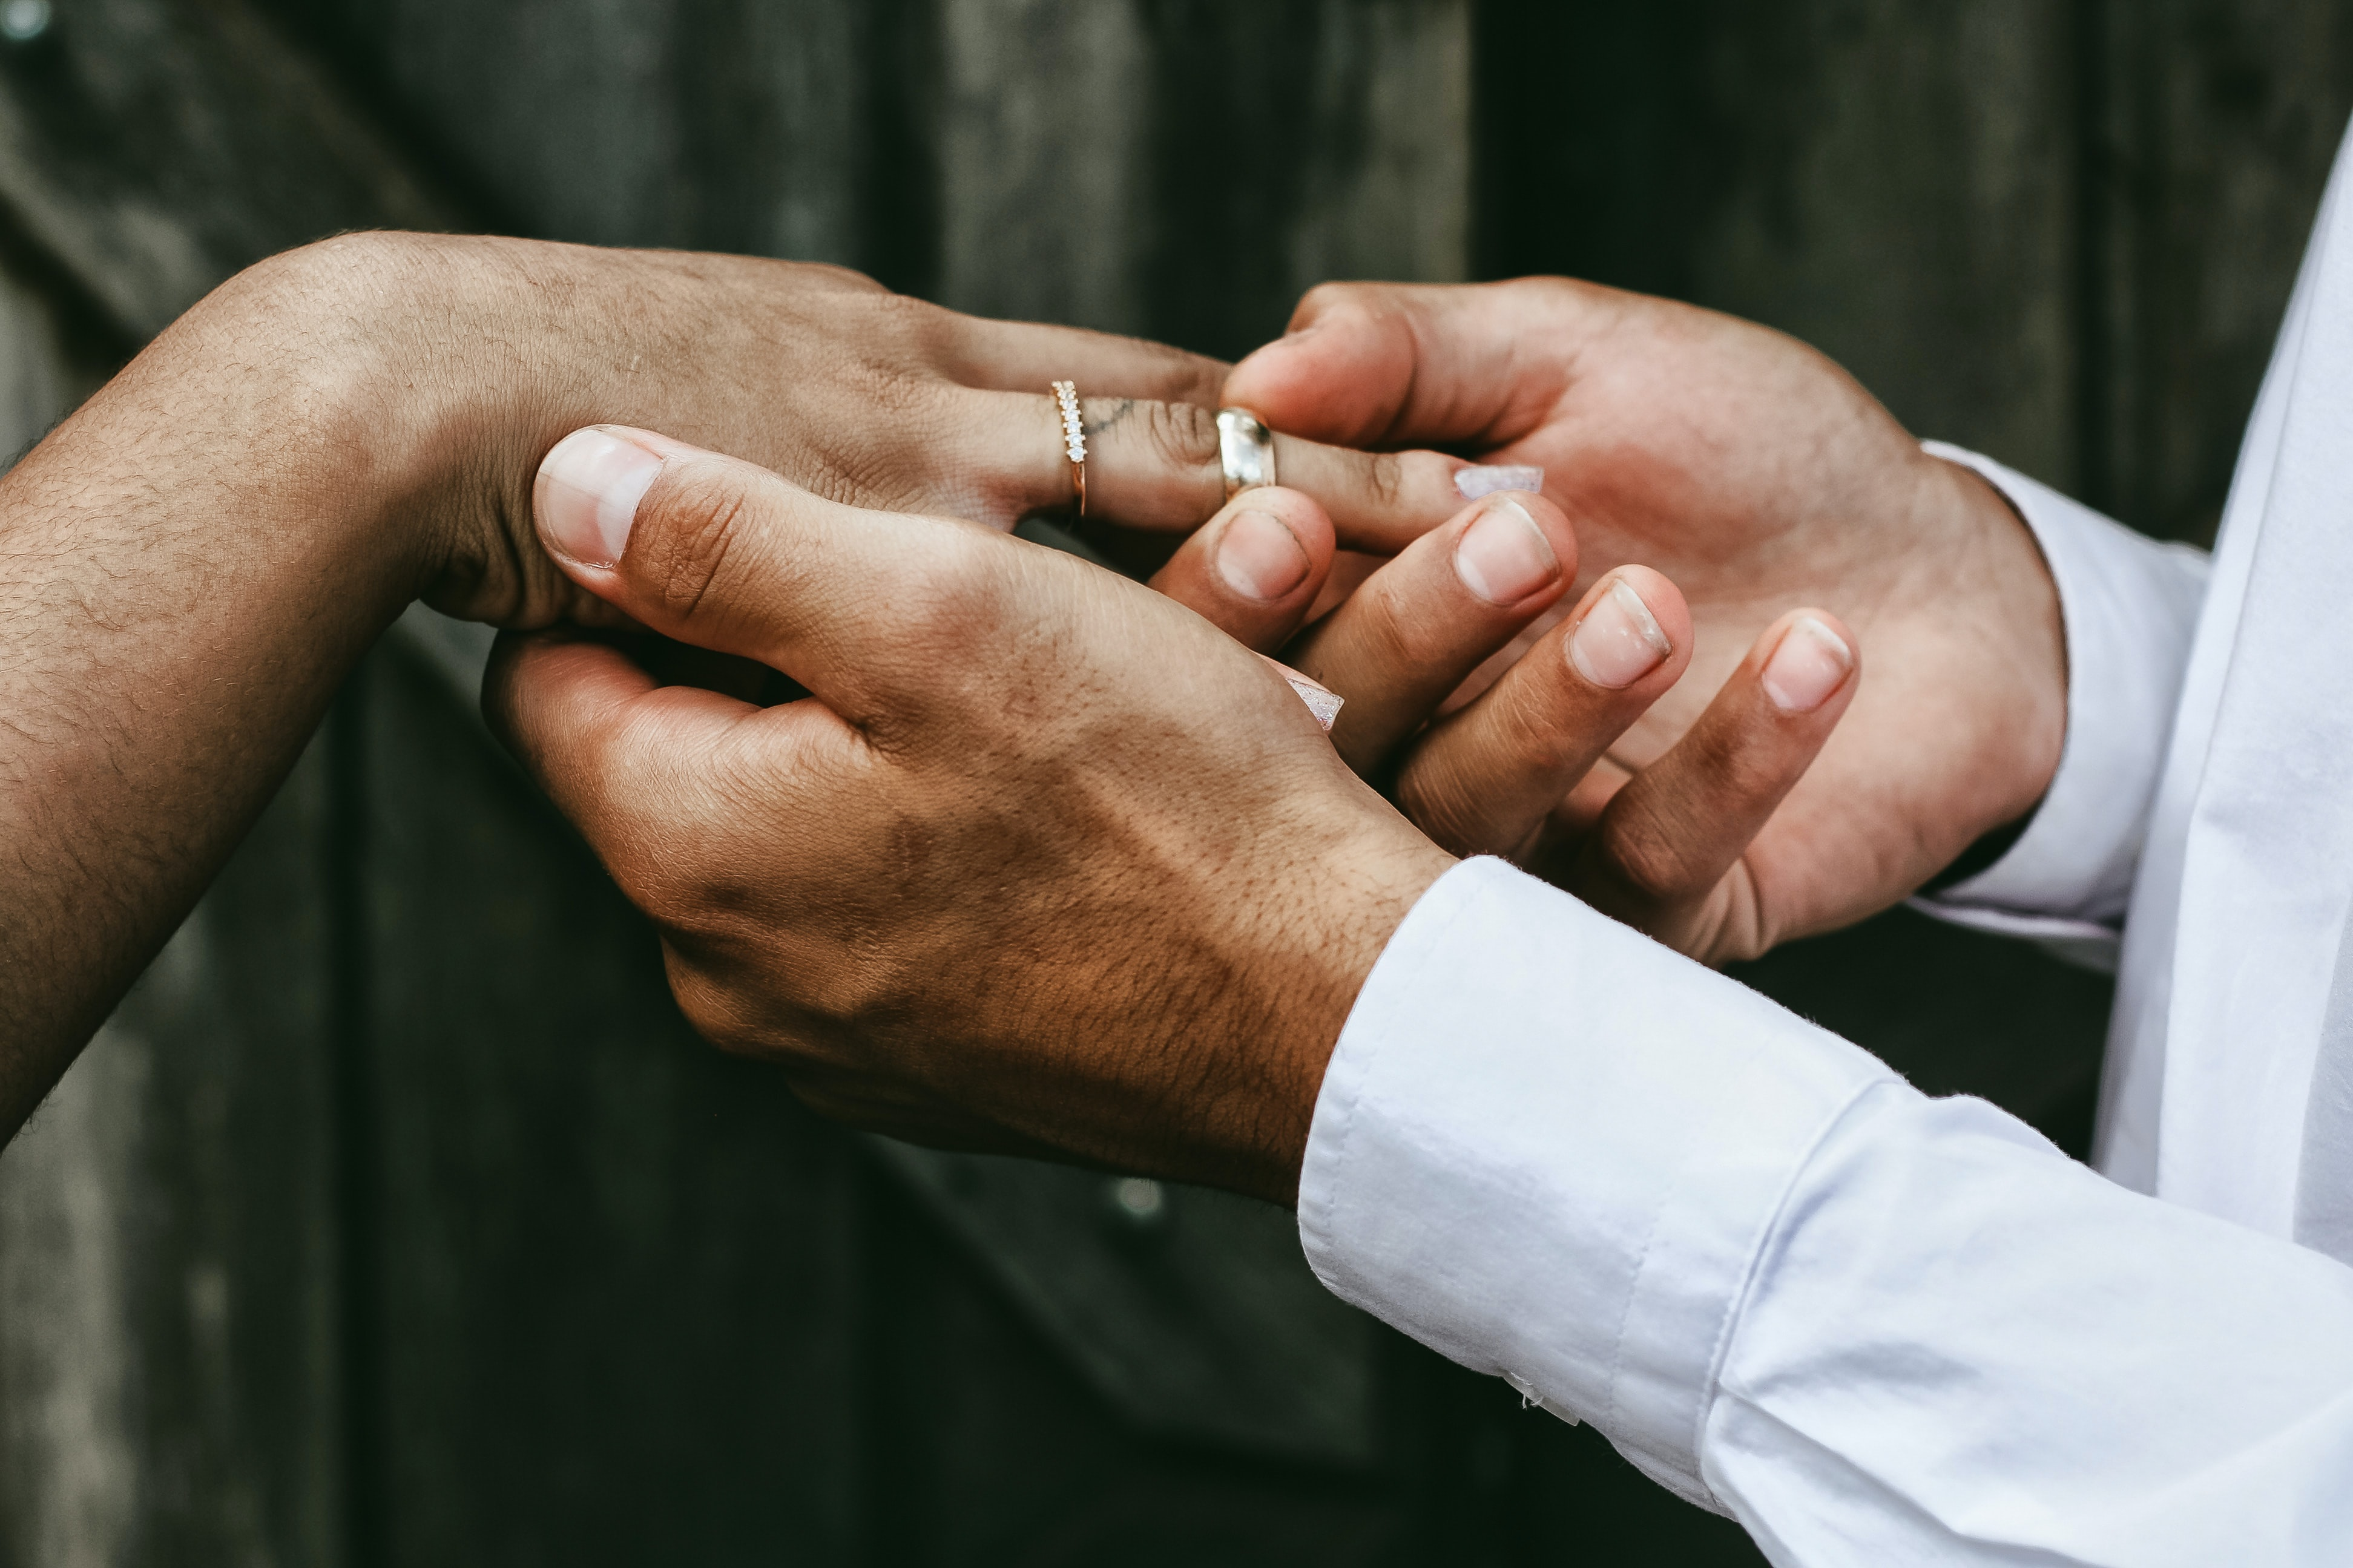 Groom Slips The Ring On The Finger Of His Bride On Their Wedding Day